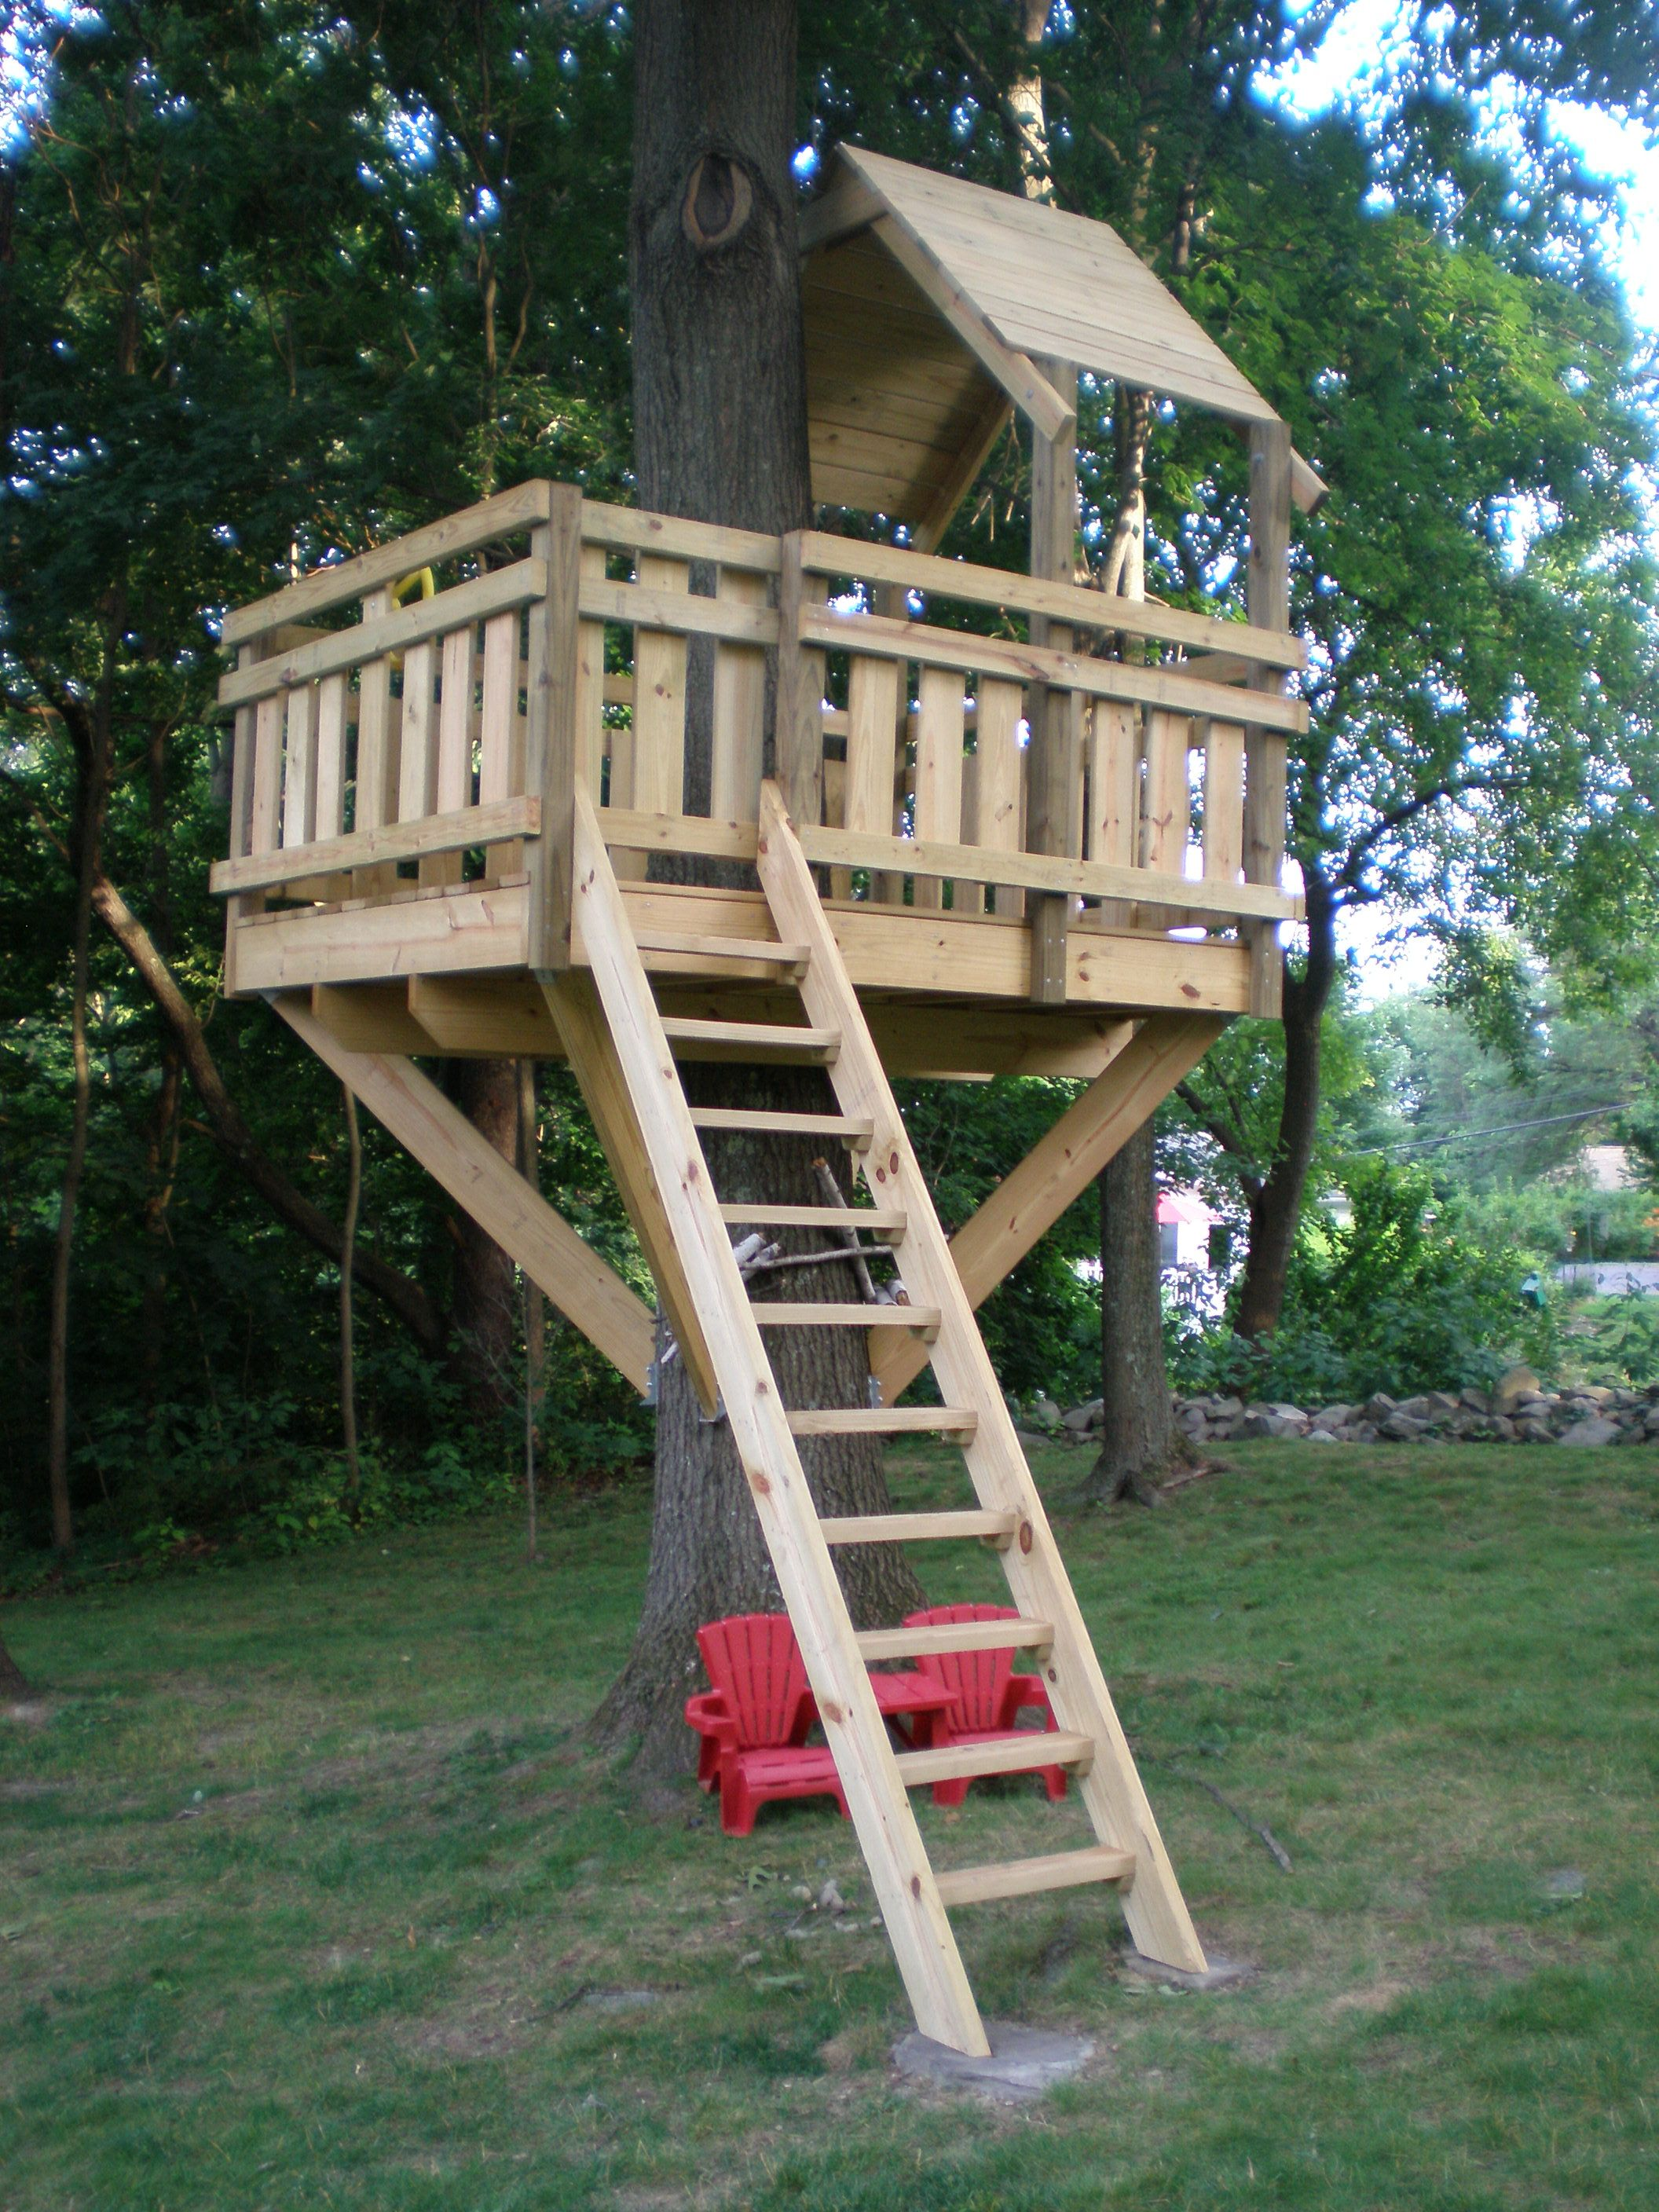 Tree Fort Ladder Gate Roof Finale Back Gardens For Kids And